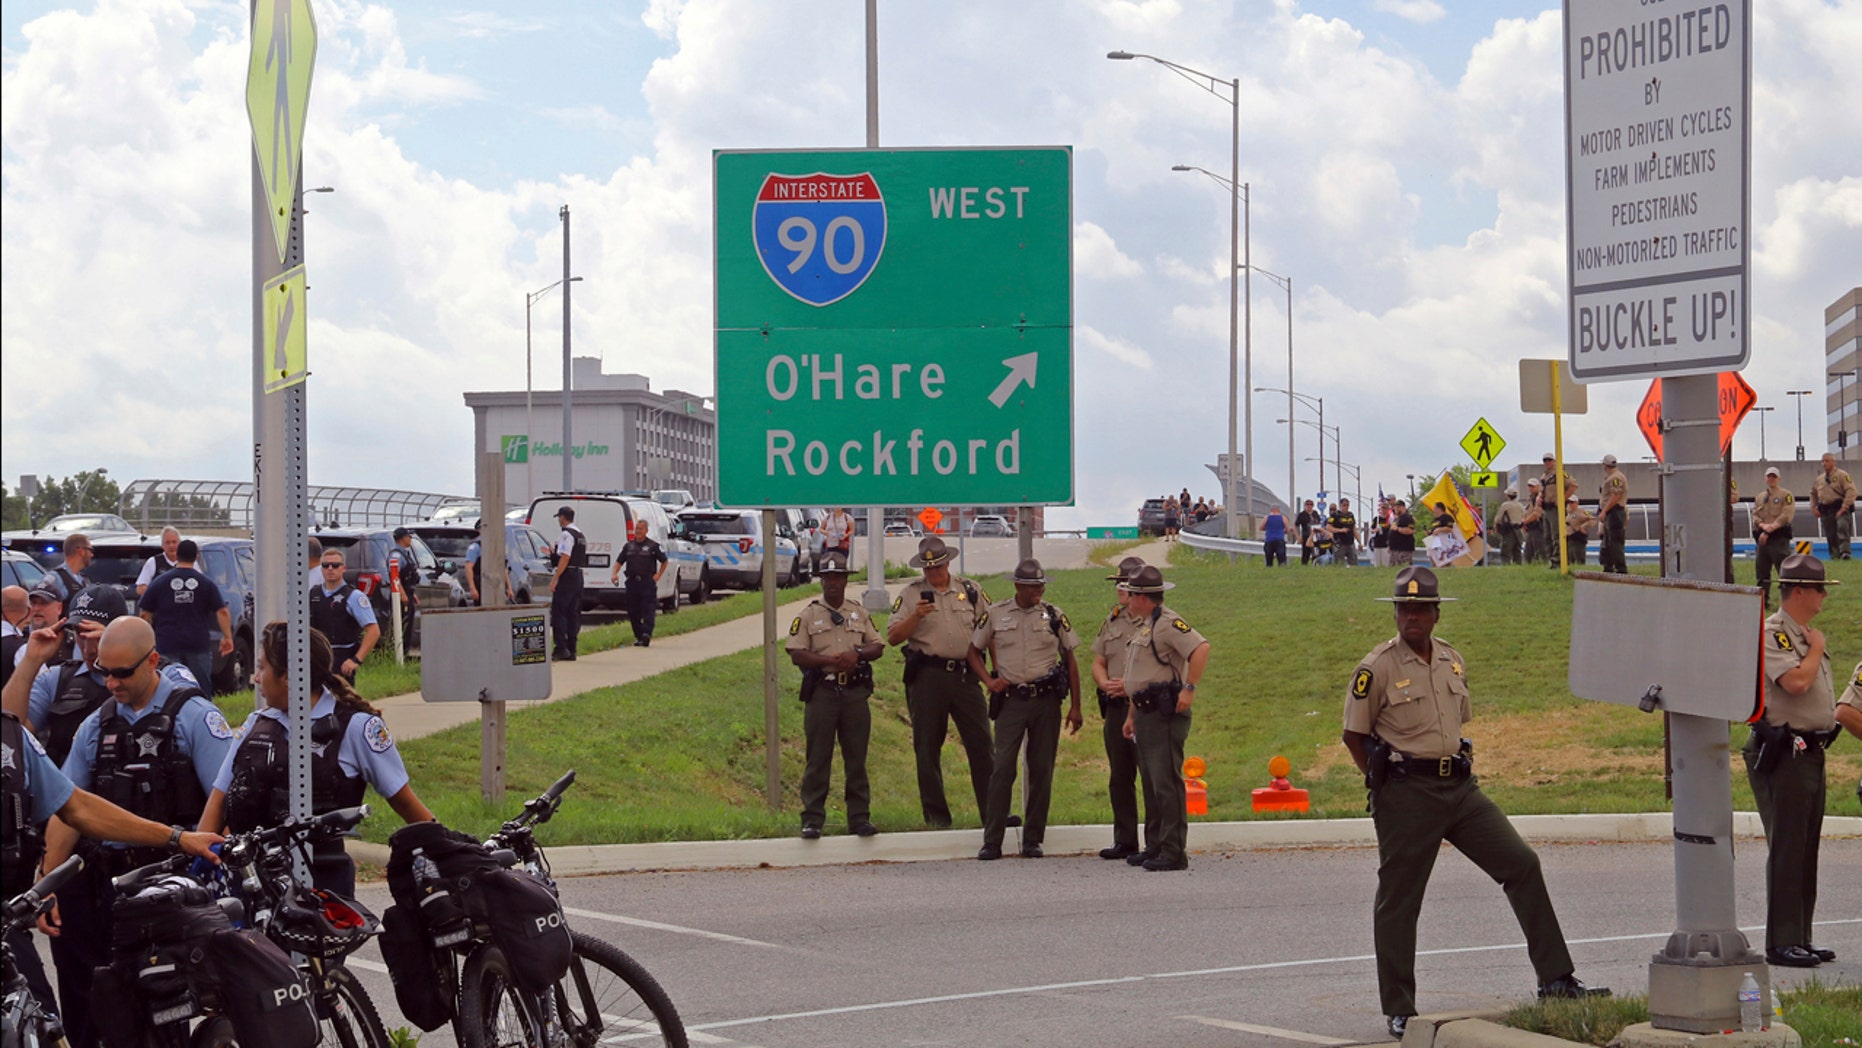 Police watch along a ramp leading onto the Kennedy Expressway in Chicago, Monday, Sept. 3, 2018, after demonstrators had planned to march westbound on Interstate 90 for about a mile.